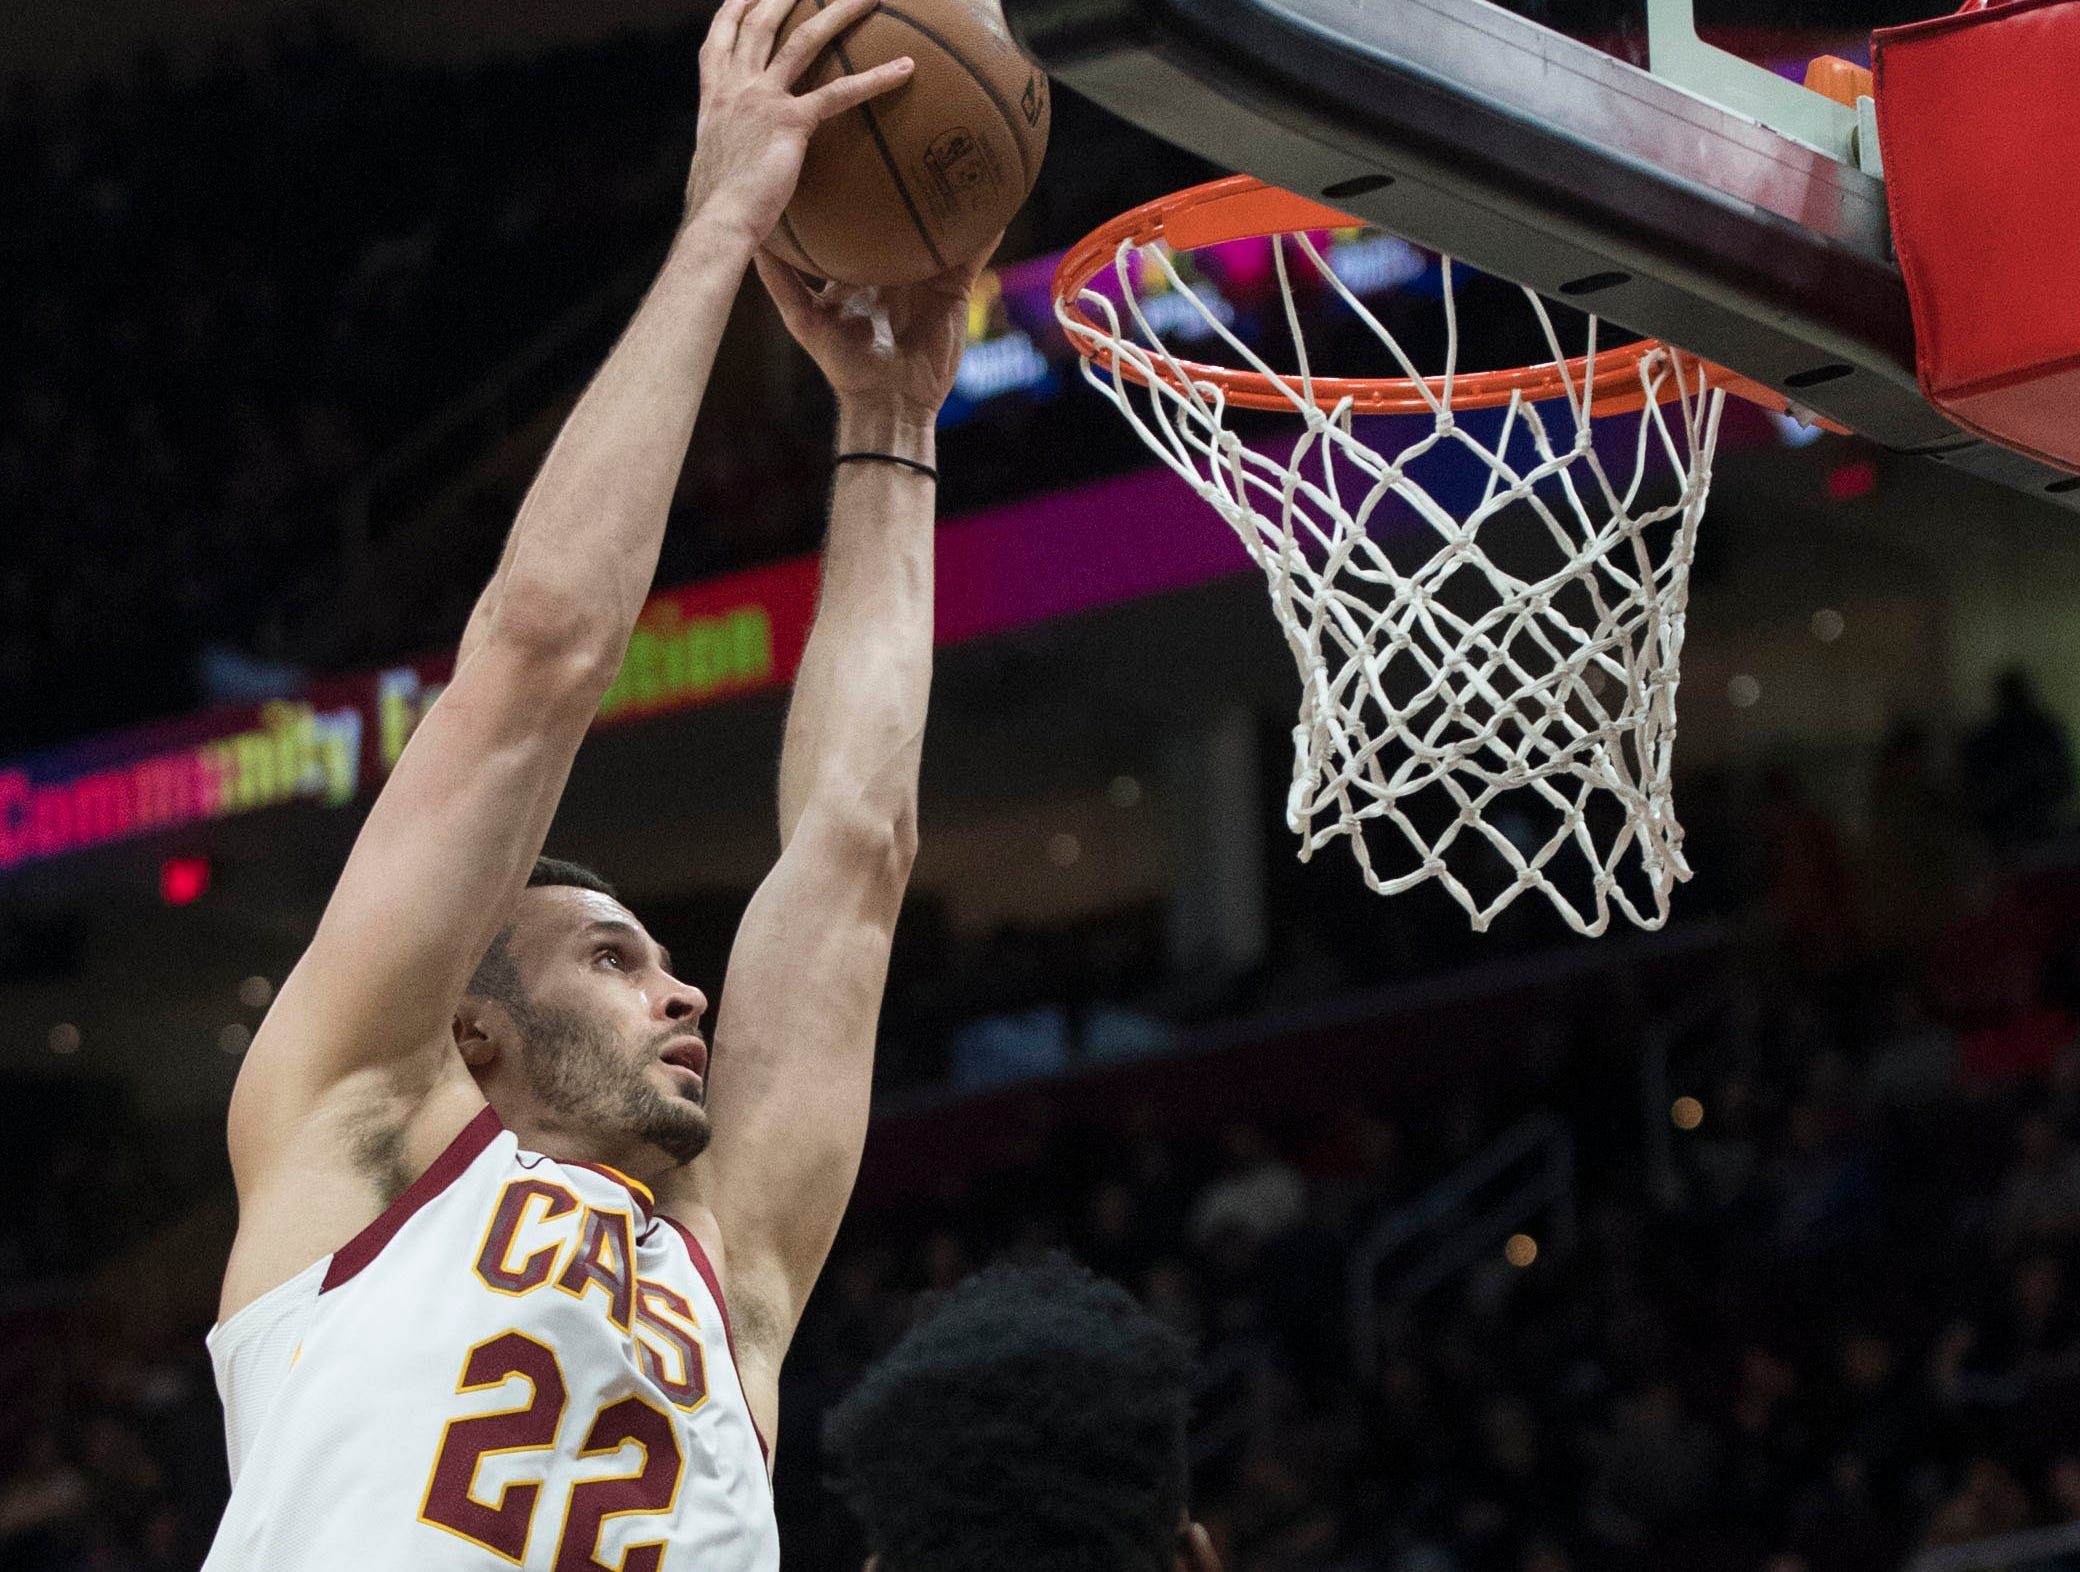 Feb 21, 2019; Cleveland, OH, USA; Cleveland Cavaliers forward Larry Nance Jr. (22) dunks against Phoenix Suns center Deandre Ayton (22) during the second half at Quicken Loans Arena. Mandatory Credit: Ken Blaze-USA TODAY Sports